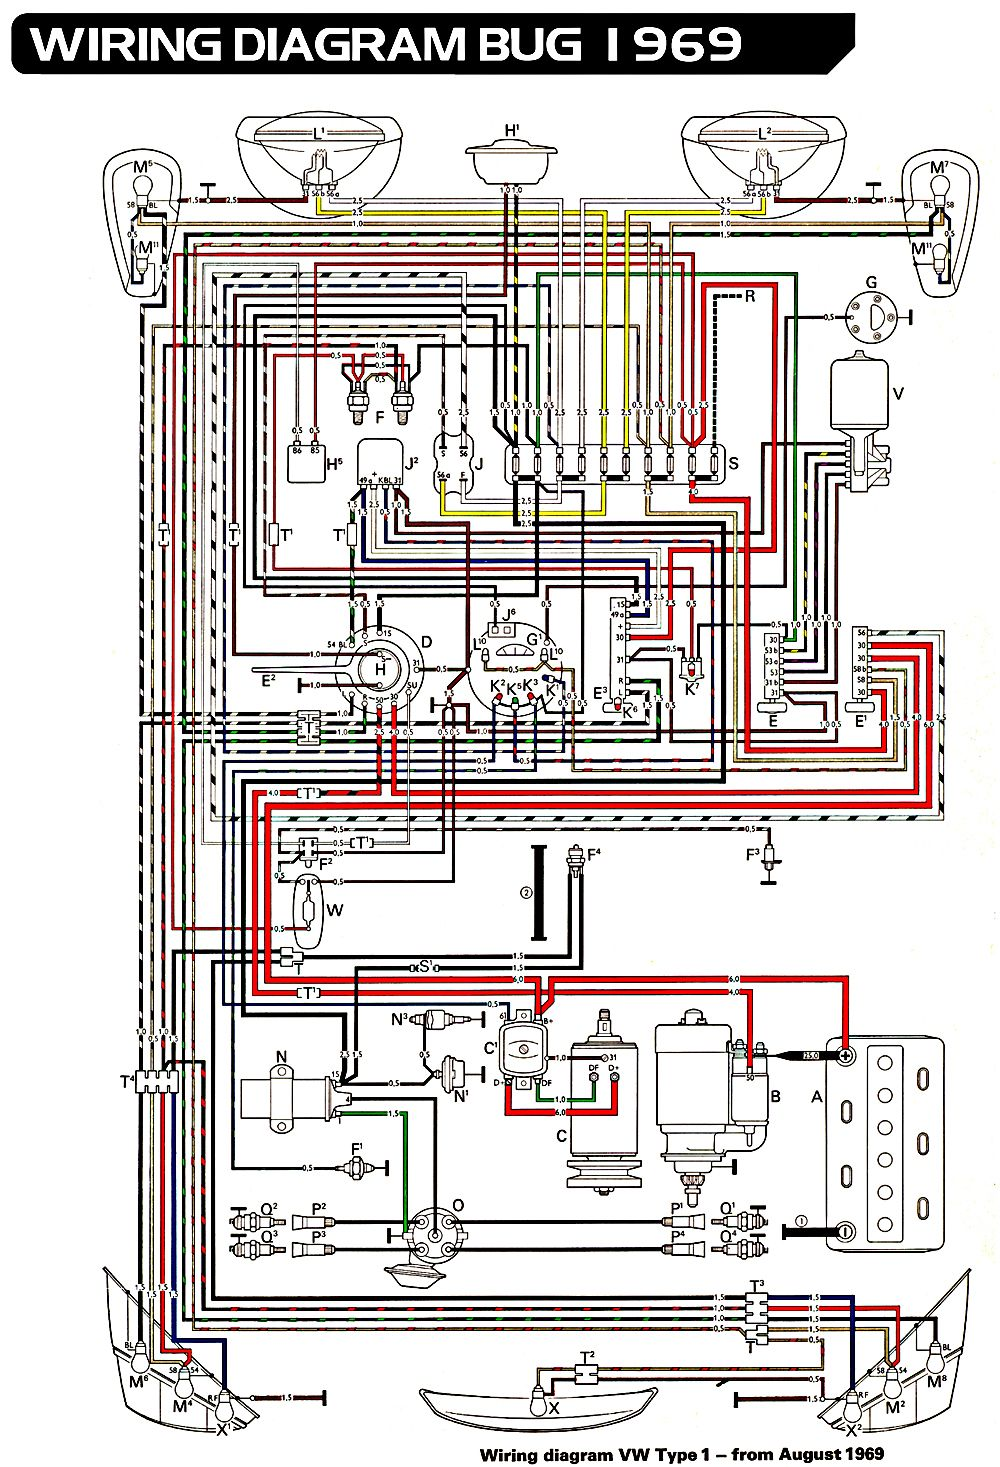 1996 chevy s10 pick up wiring diagram volkswagen beetle wiring diagram - 1966 vw beetle wiring ... | vw | pinterest | vw beetles ... volkswagen up wiring diagram #14